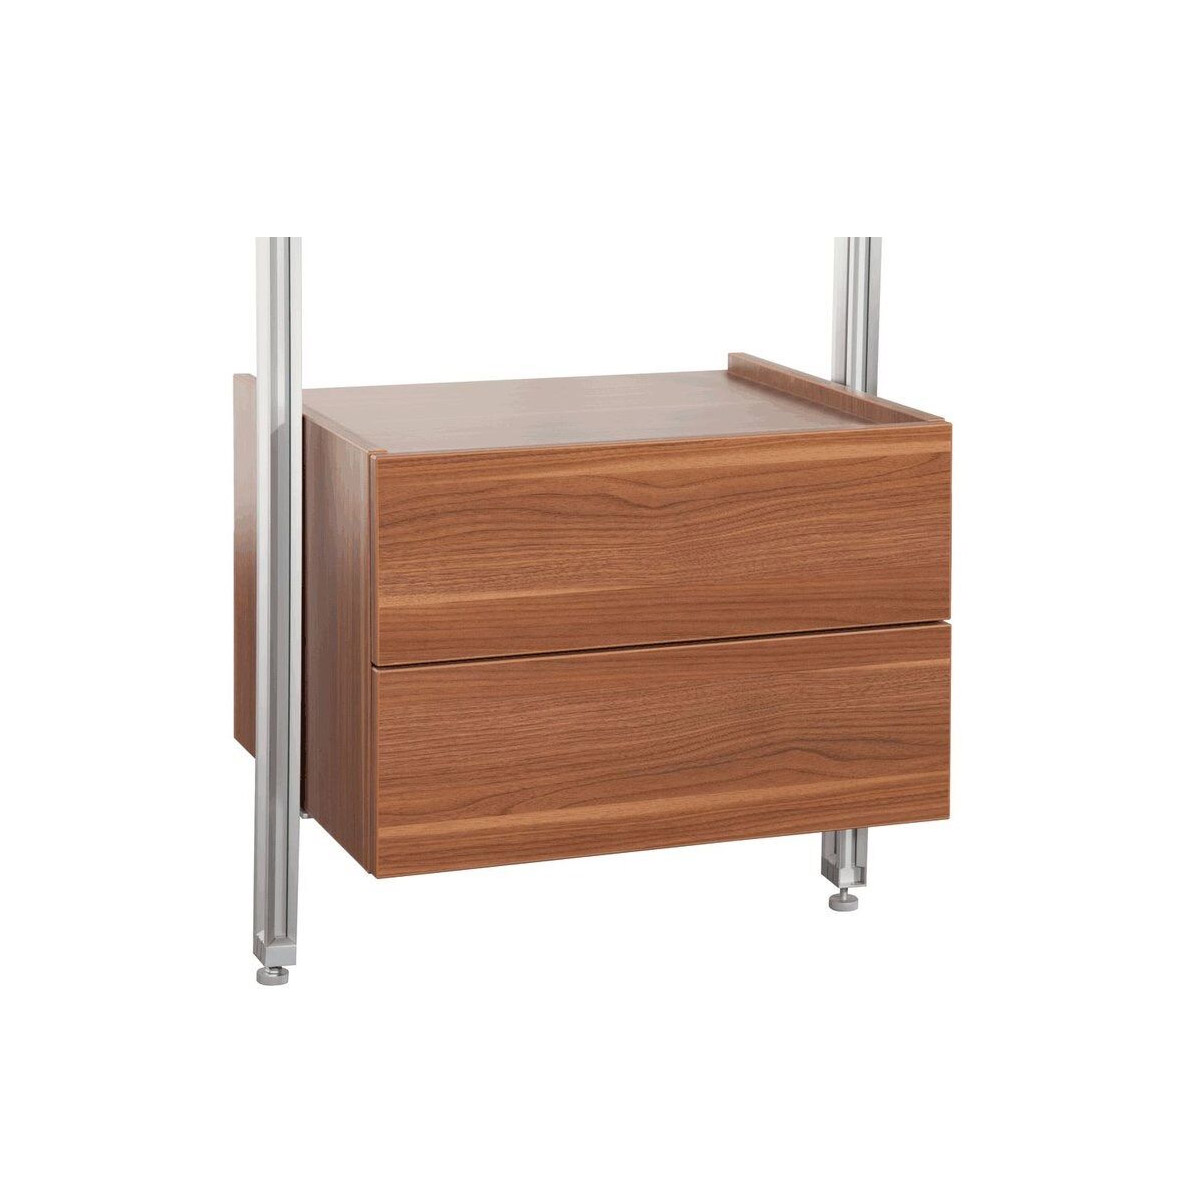 Relax Walnut Double Drawer Box Kit 550mm